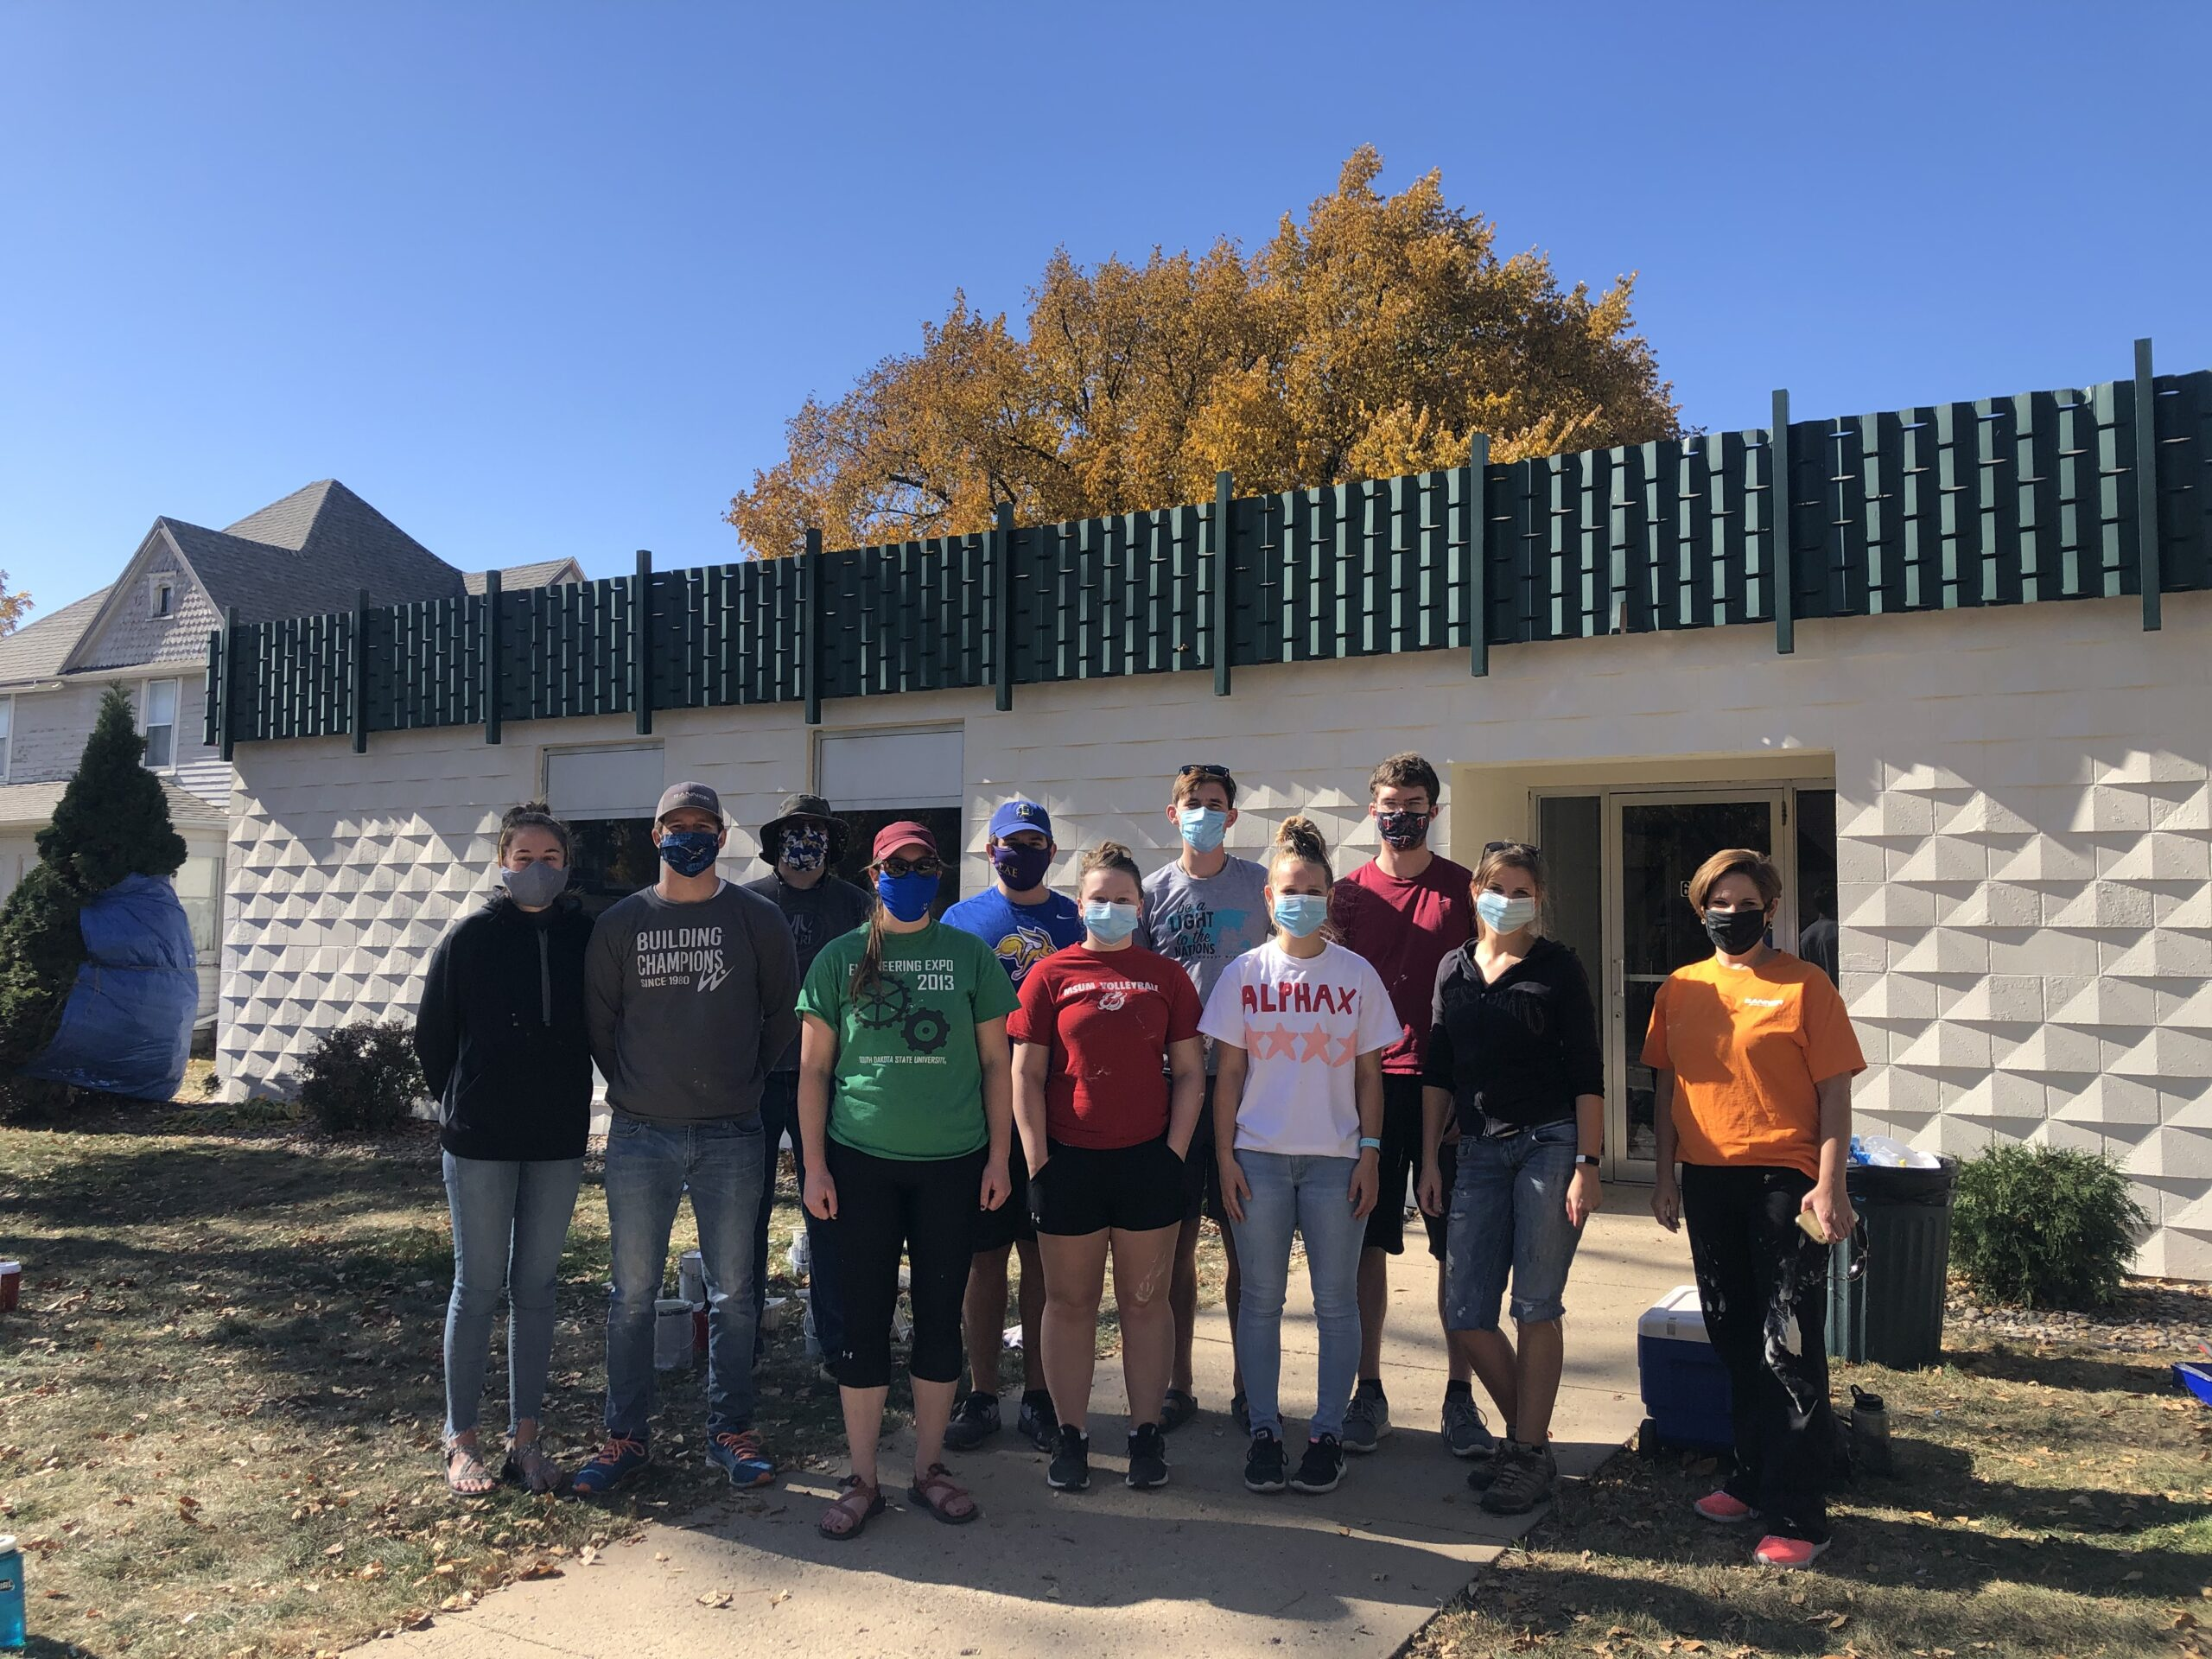 Volunteer Image for Painting Building